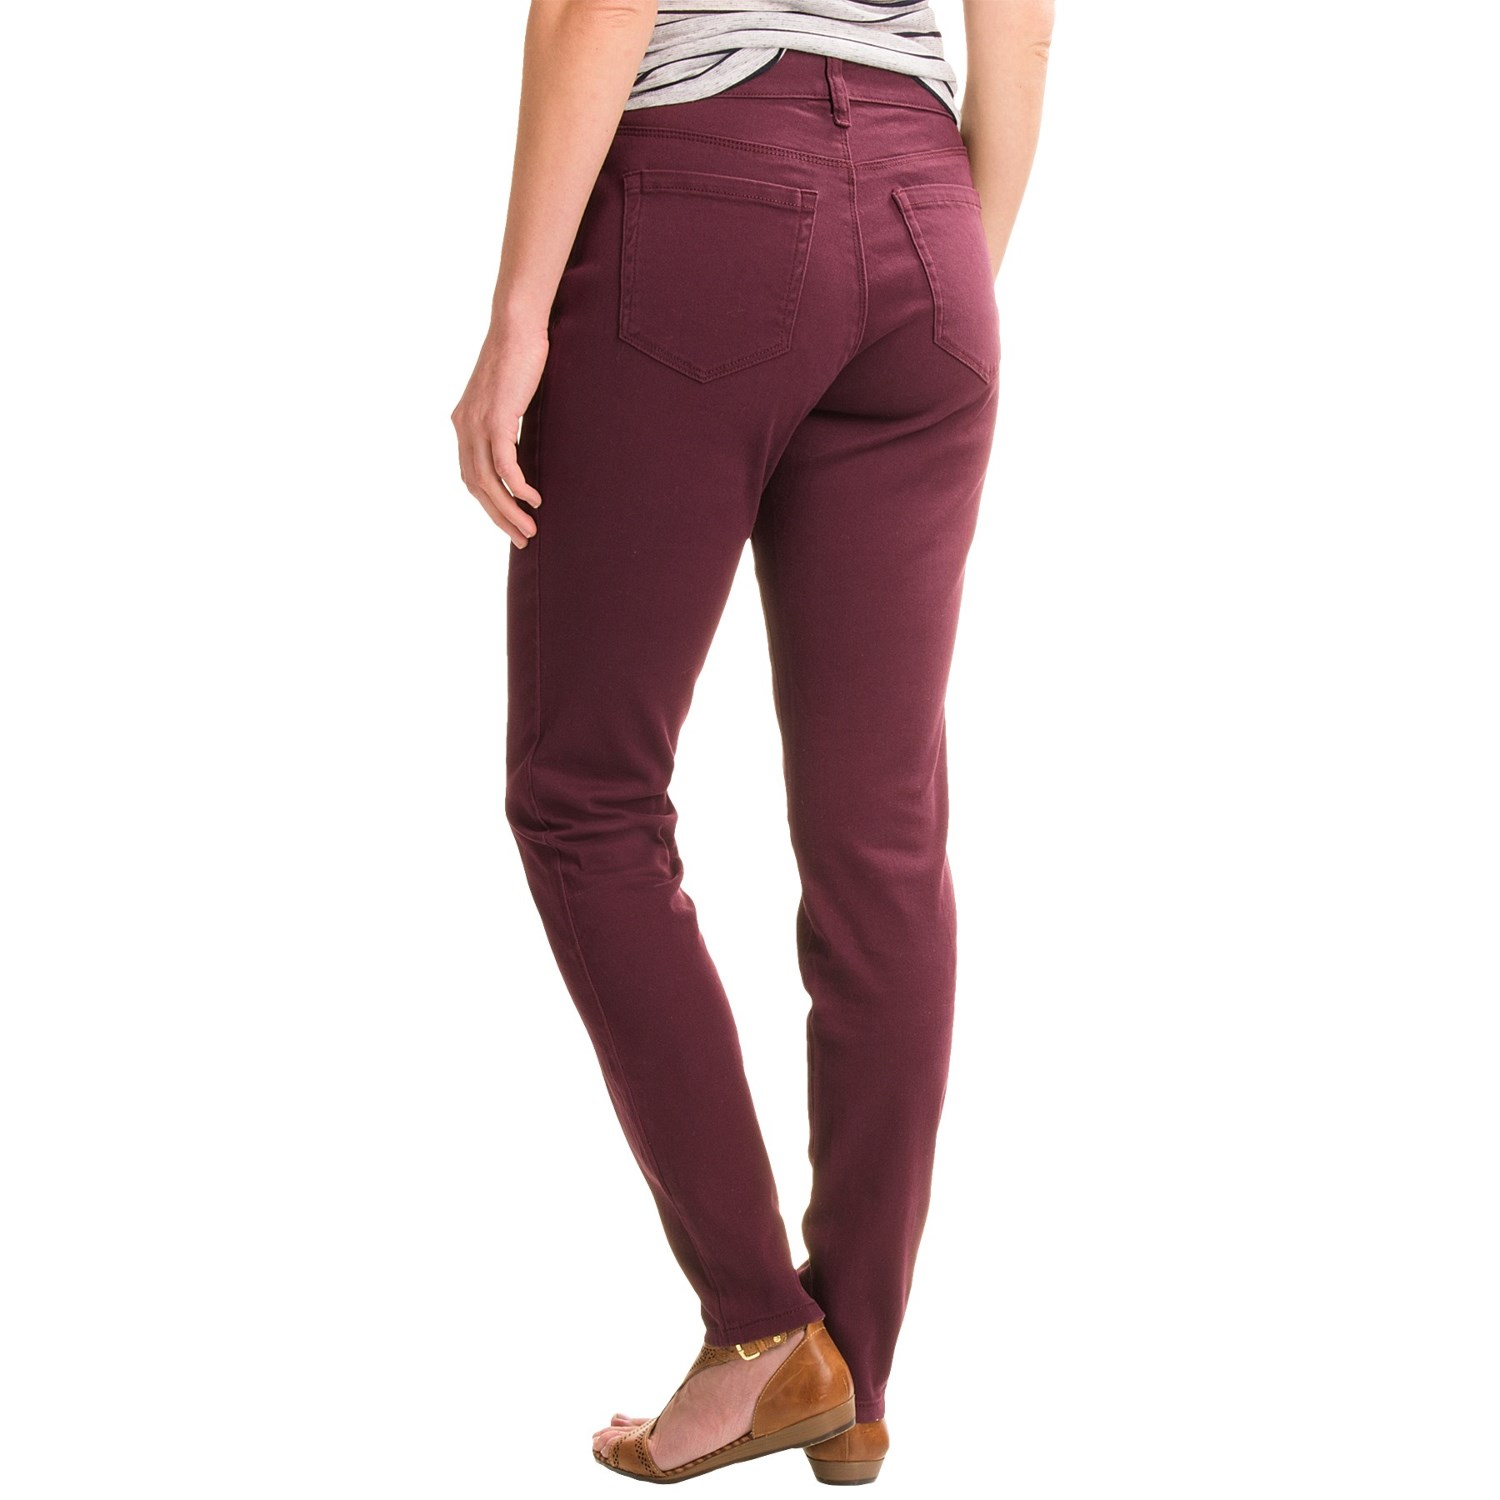 Core Replenishment Colored Skinny Jeans (For Women) - Core Replenishment Colored Skinny Jeans (For Women) - Save 73%